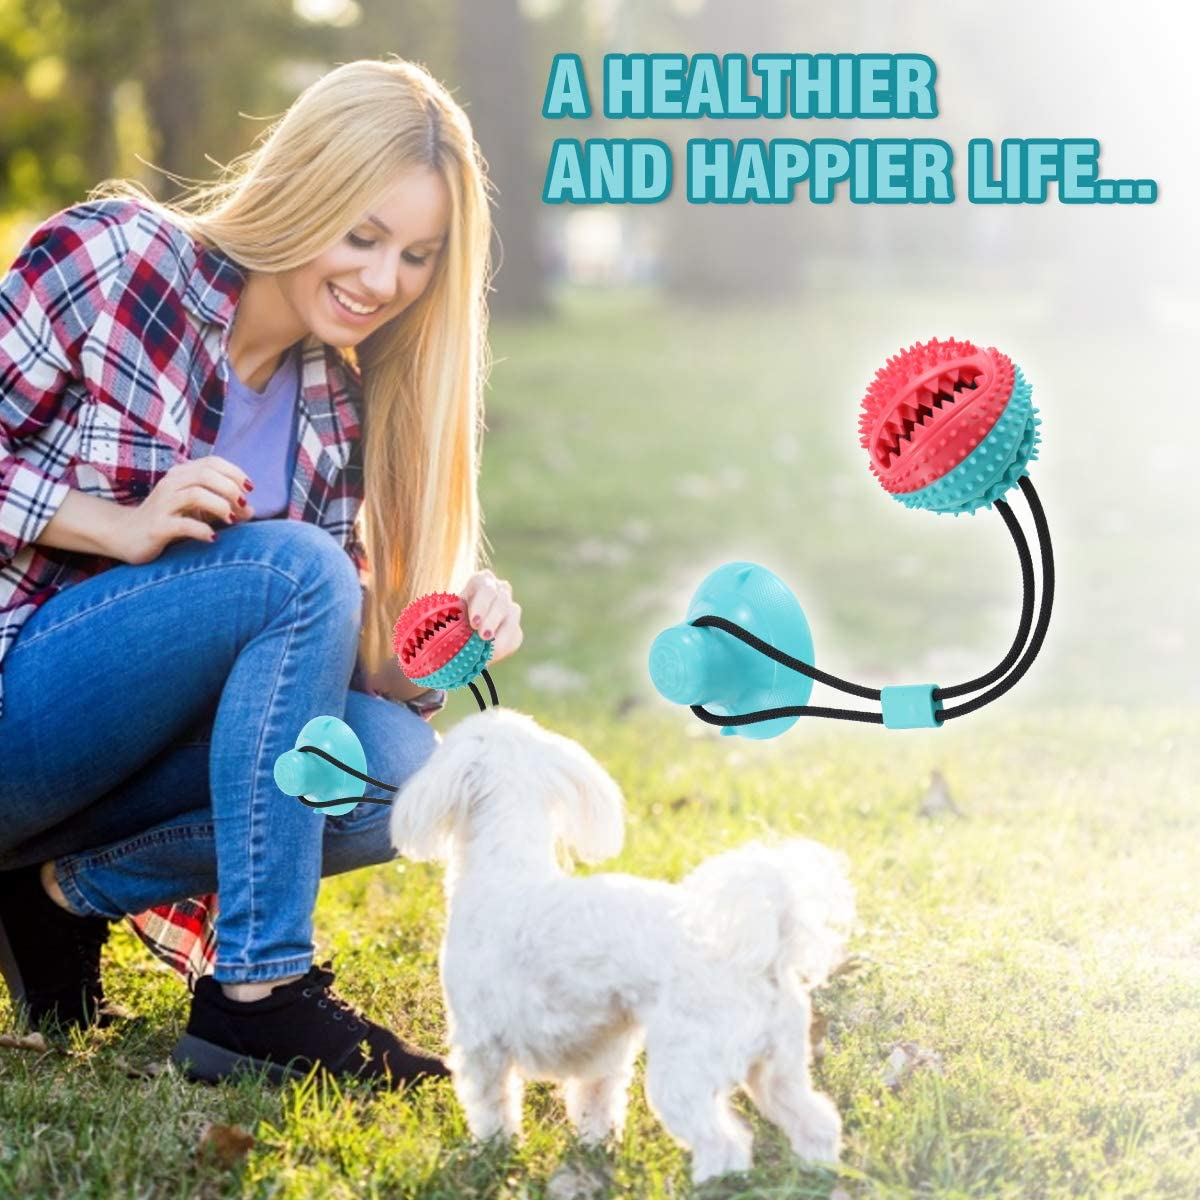 Puppy Dog Teeth Cleaning Interactive Pet Tug Toy for Boredom CAMTOA Dog Chew Toys for Aggressive Chewers Suction Cup Dog Chewing Toy Dog Rope Ball Toys with Suction Cup for Small Large Dogs